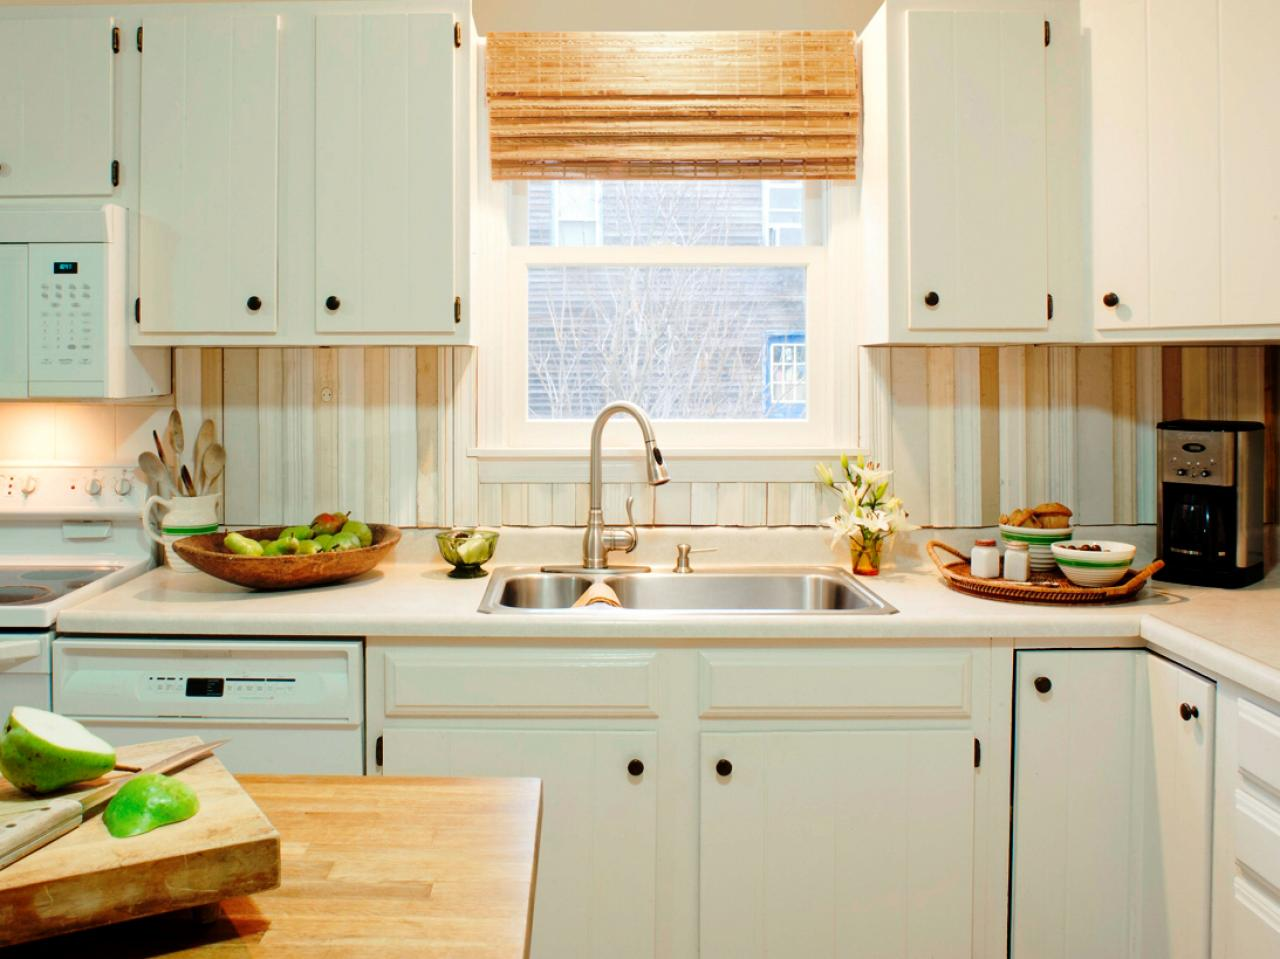 Budget Backsplash Project: Cottage-Style Salvaged Molding